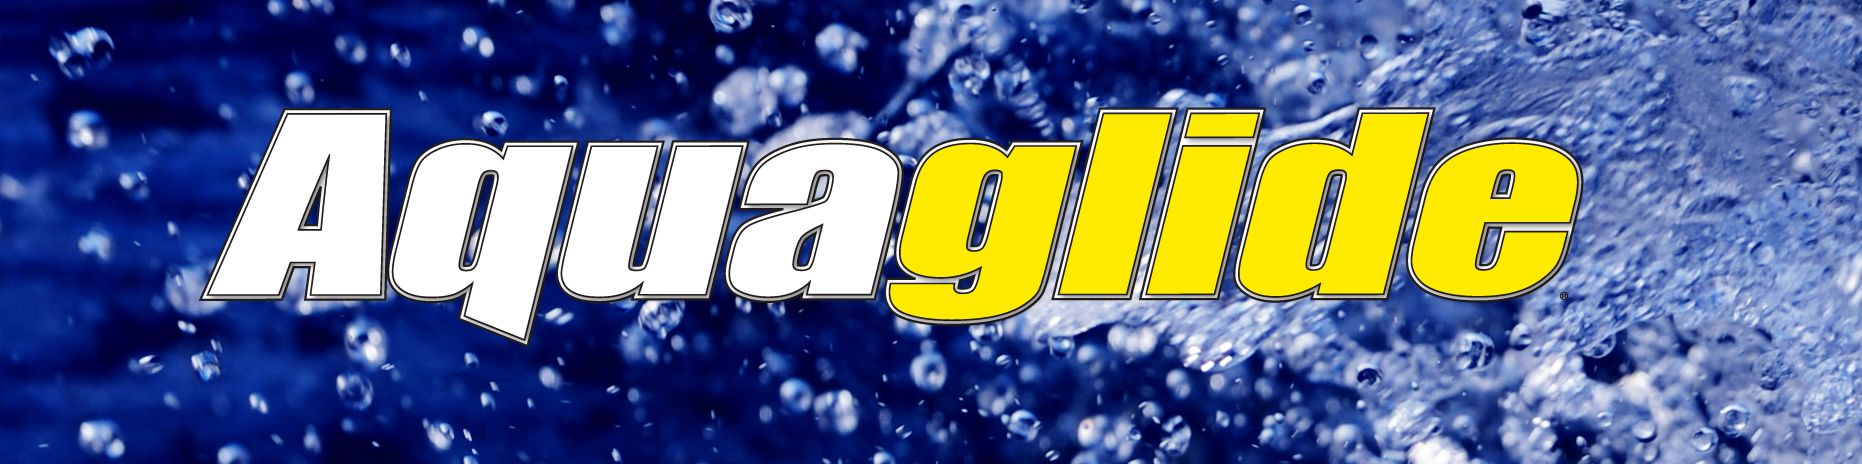 ag12_logo_splash